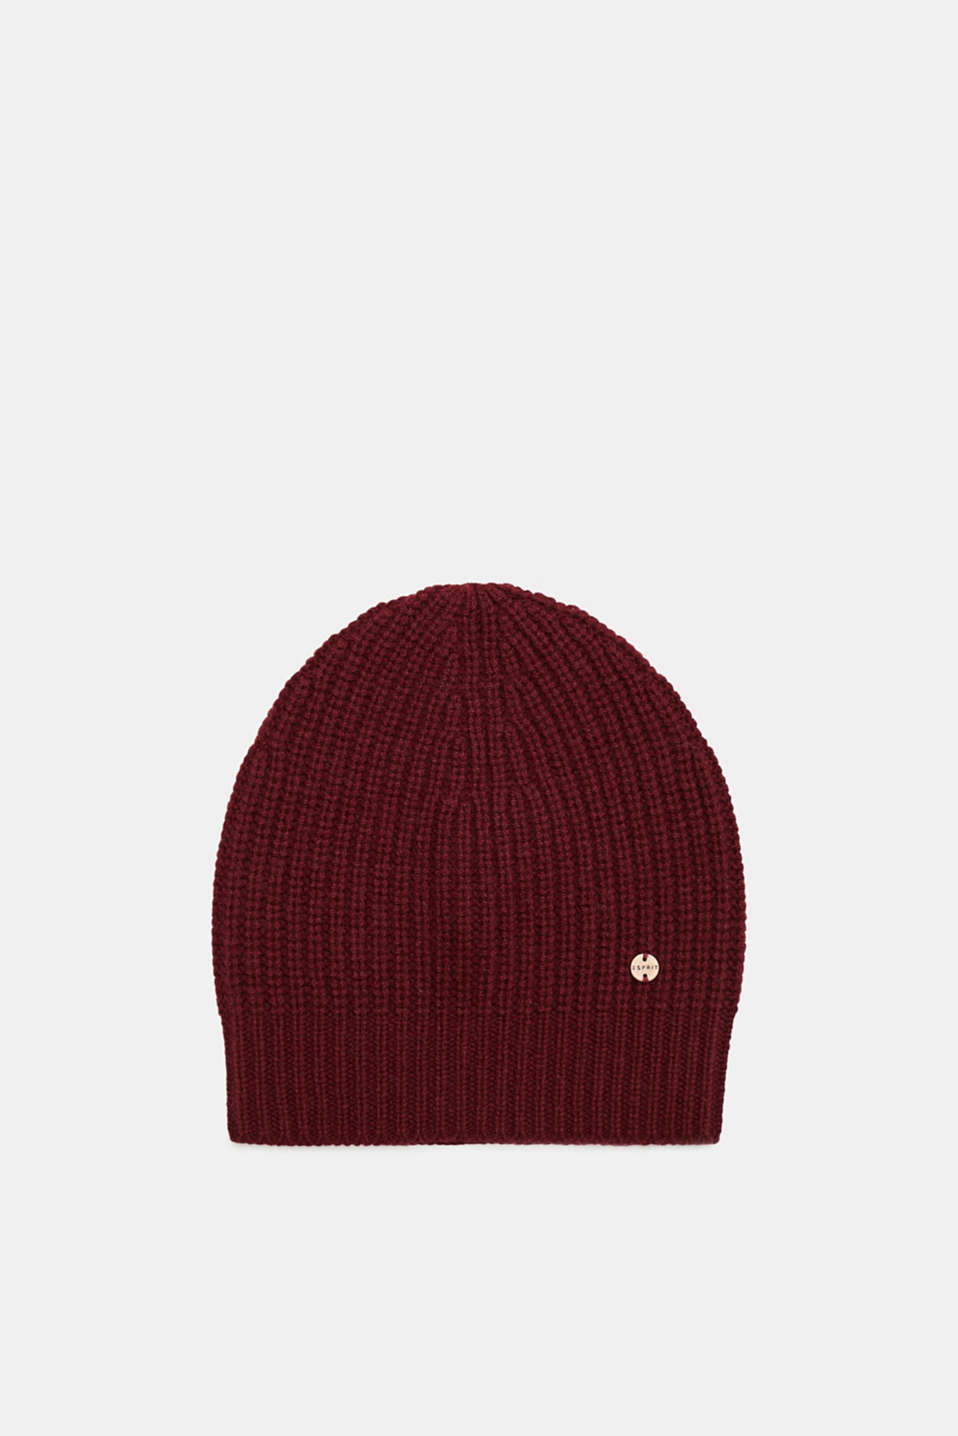 Esprit - Containing cashmere: wool hat with a ribbed pattern